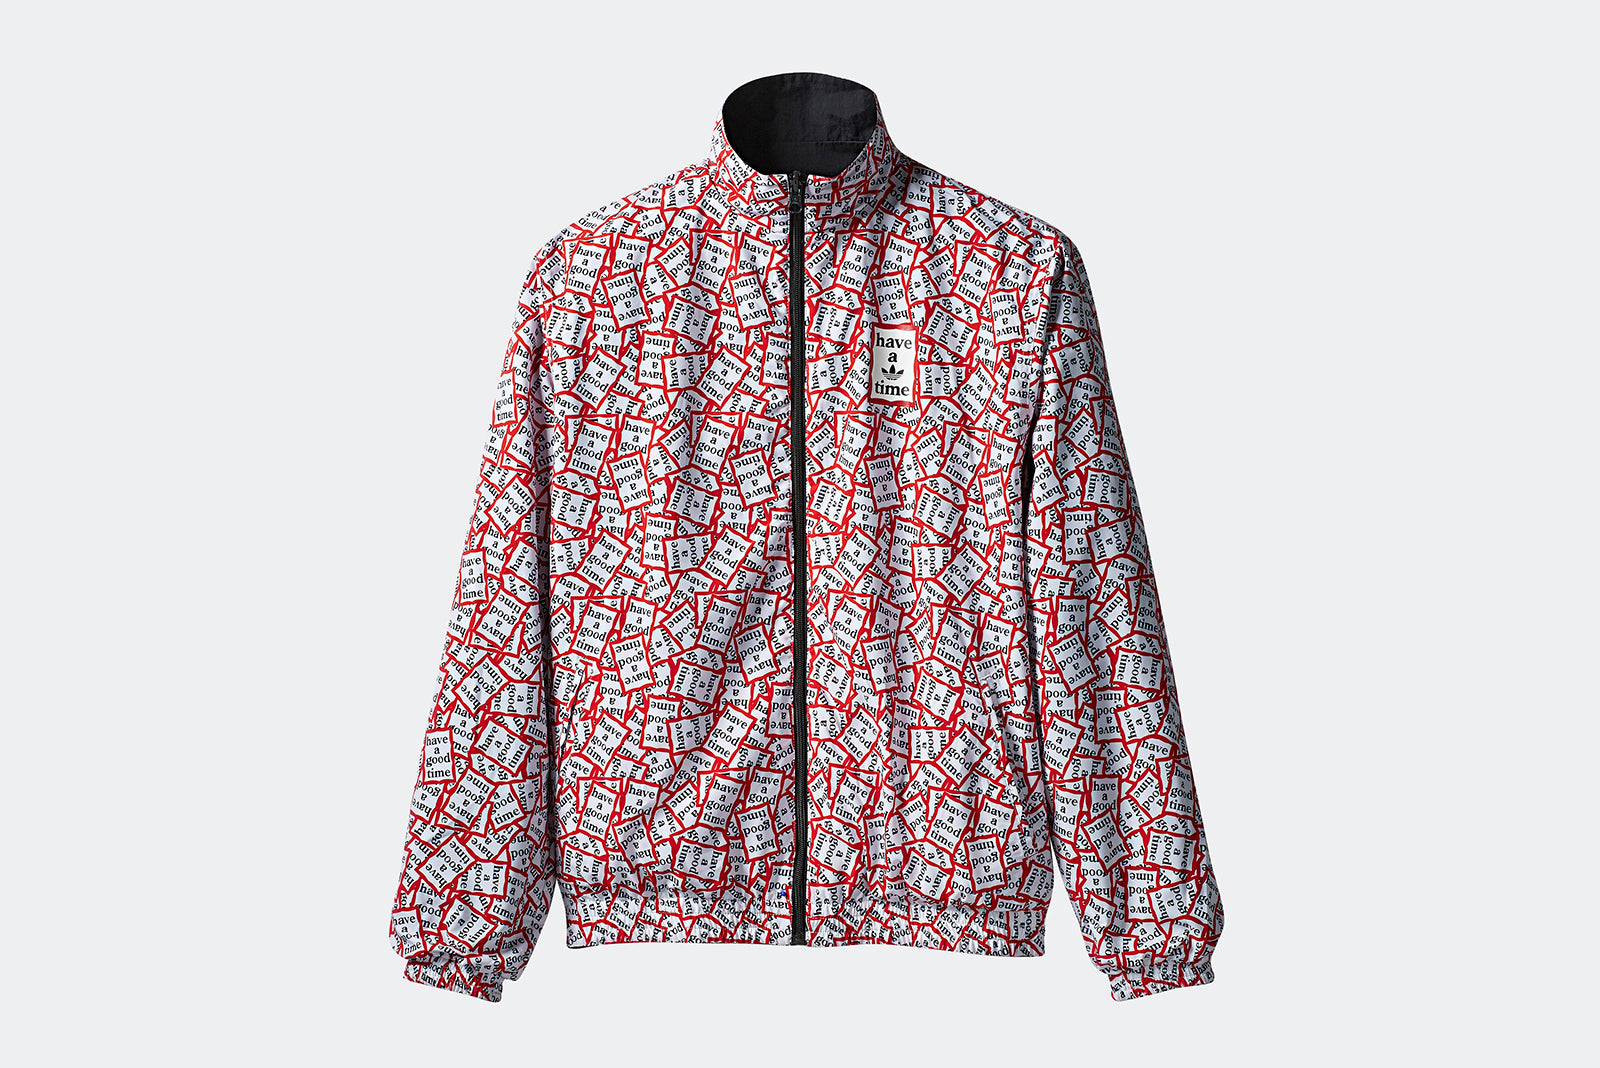 adidas Originals x Have A Good Time Reversible Track Top BlackWhiteRed DP7444